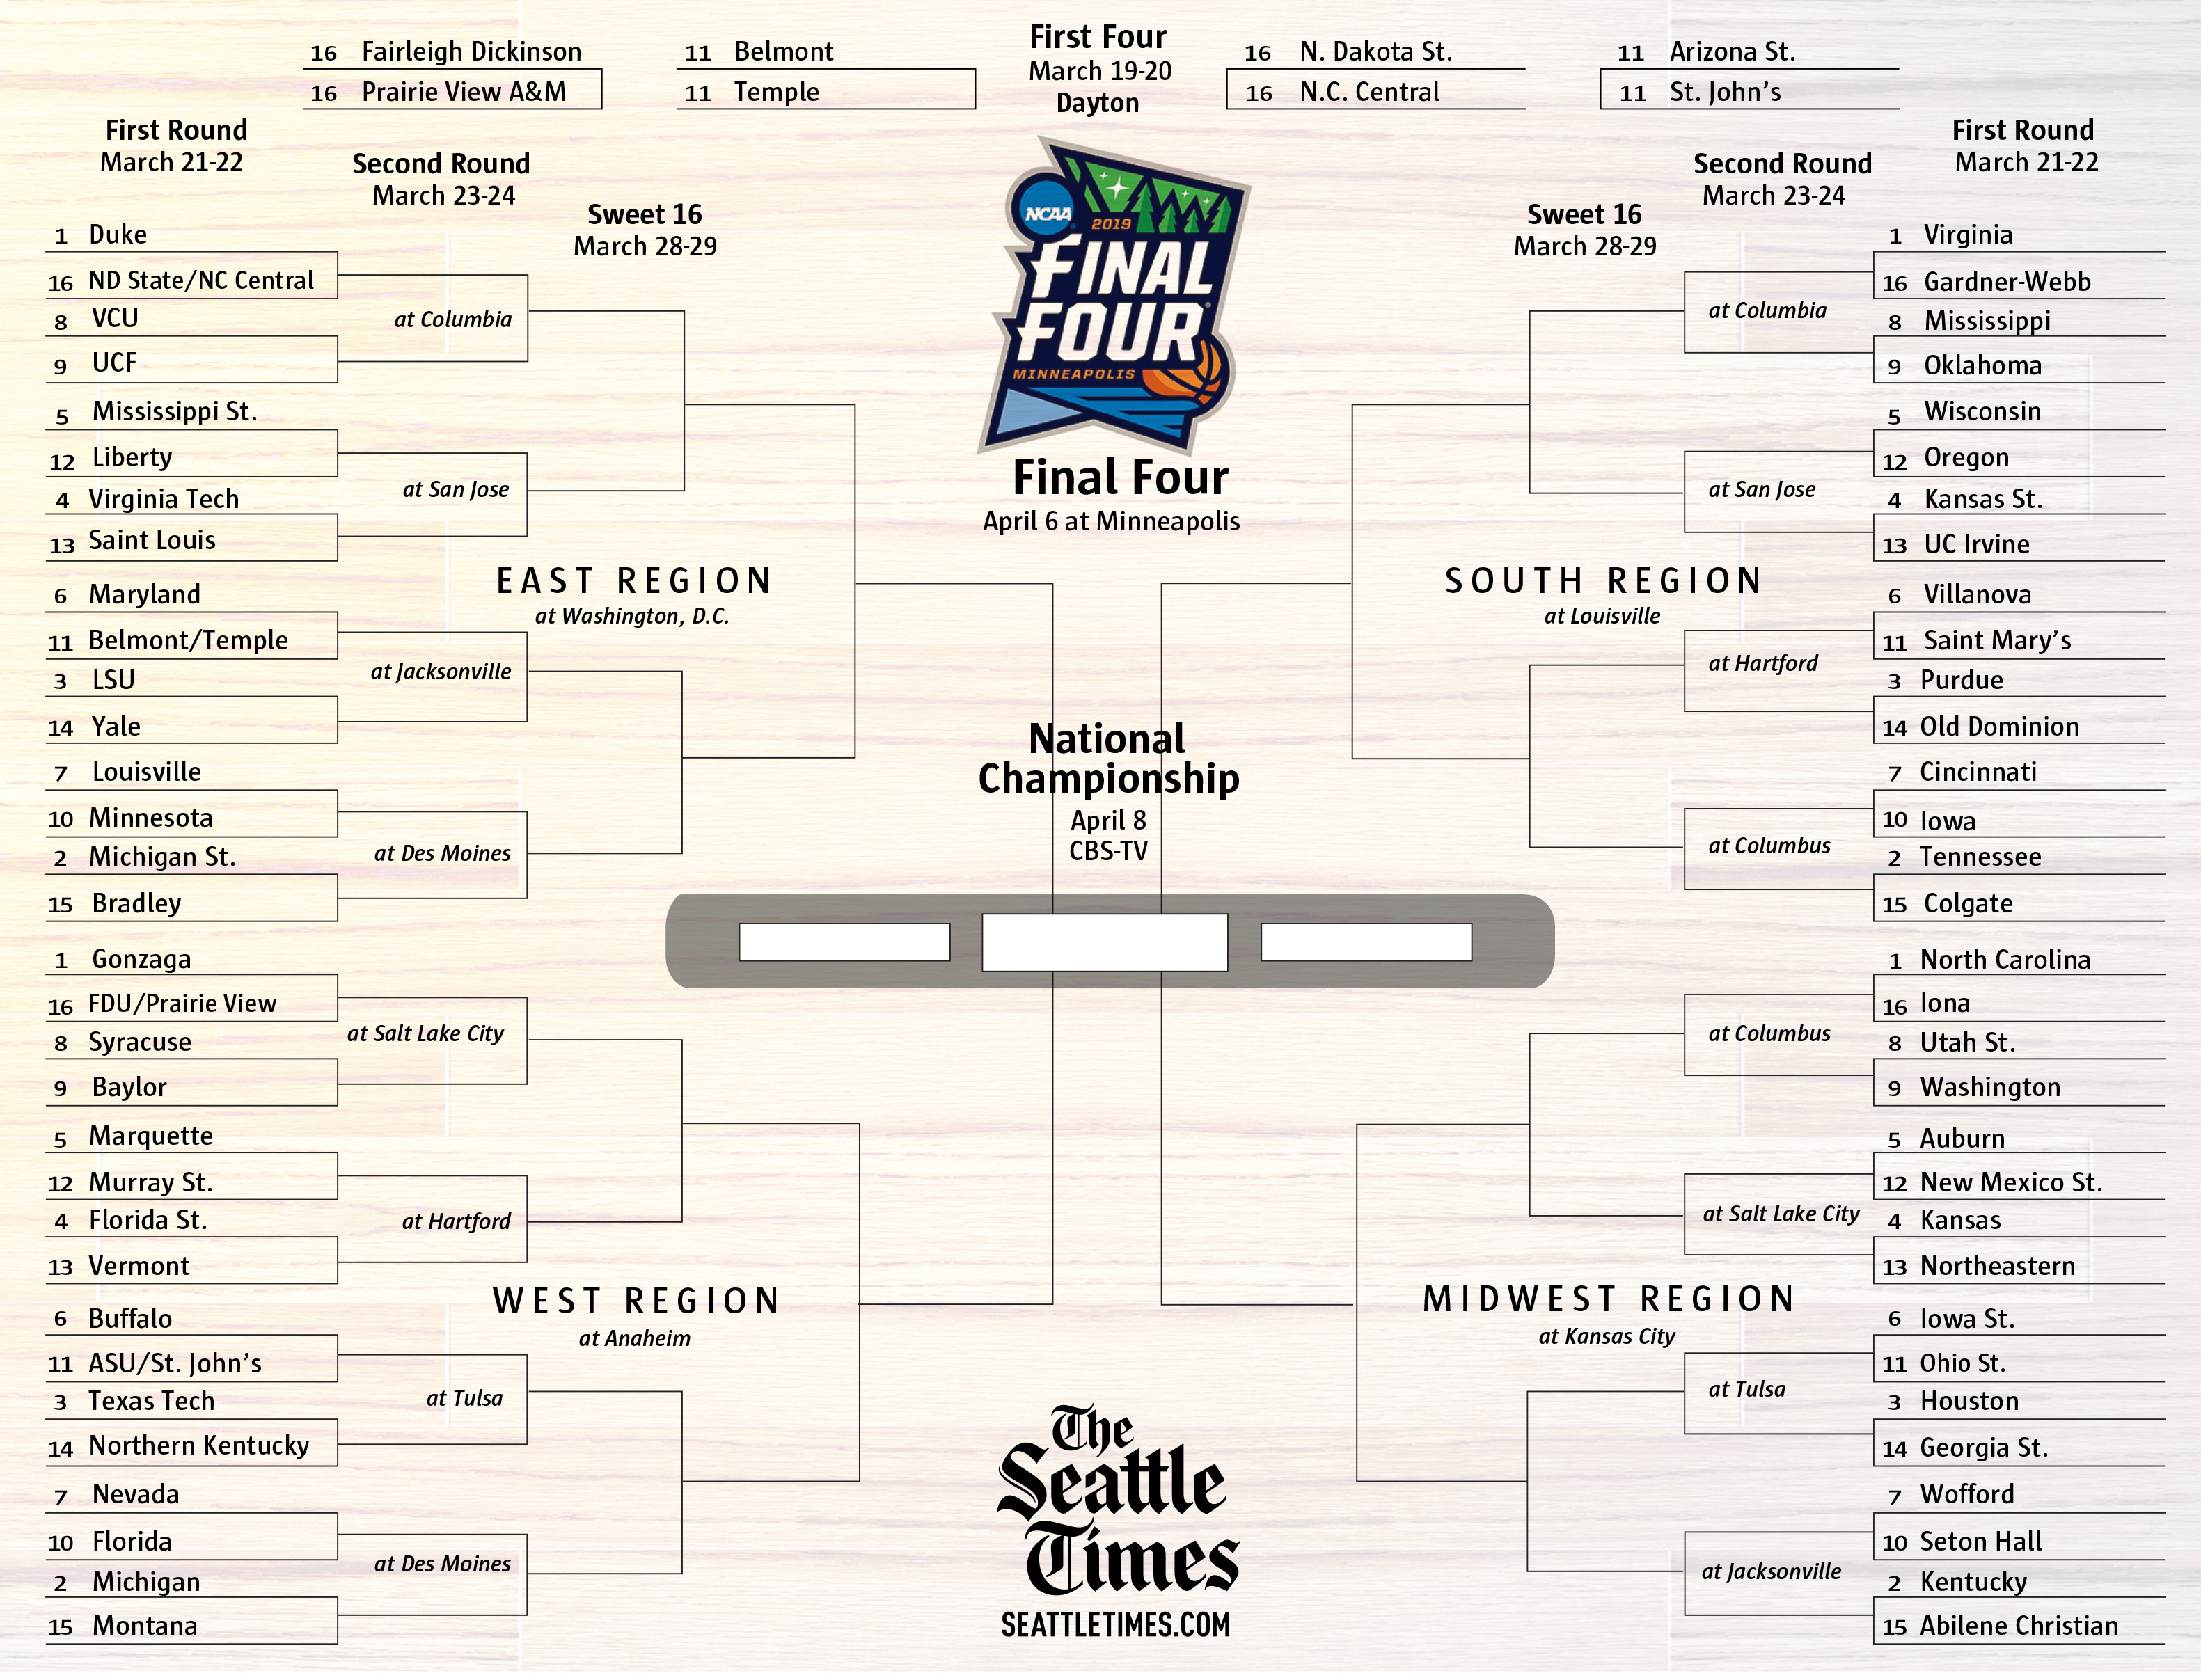 March Madness schedule 2019: Dates, times, TV channels ...